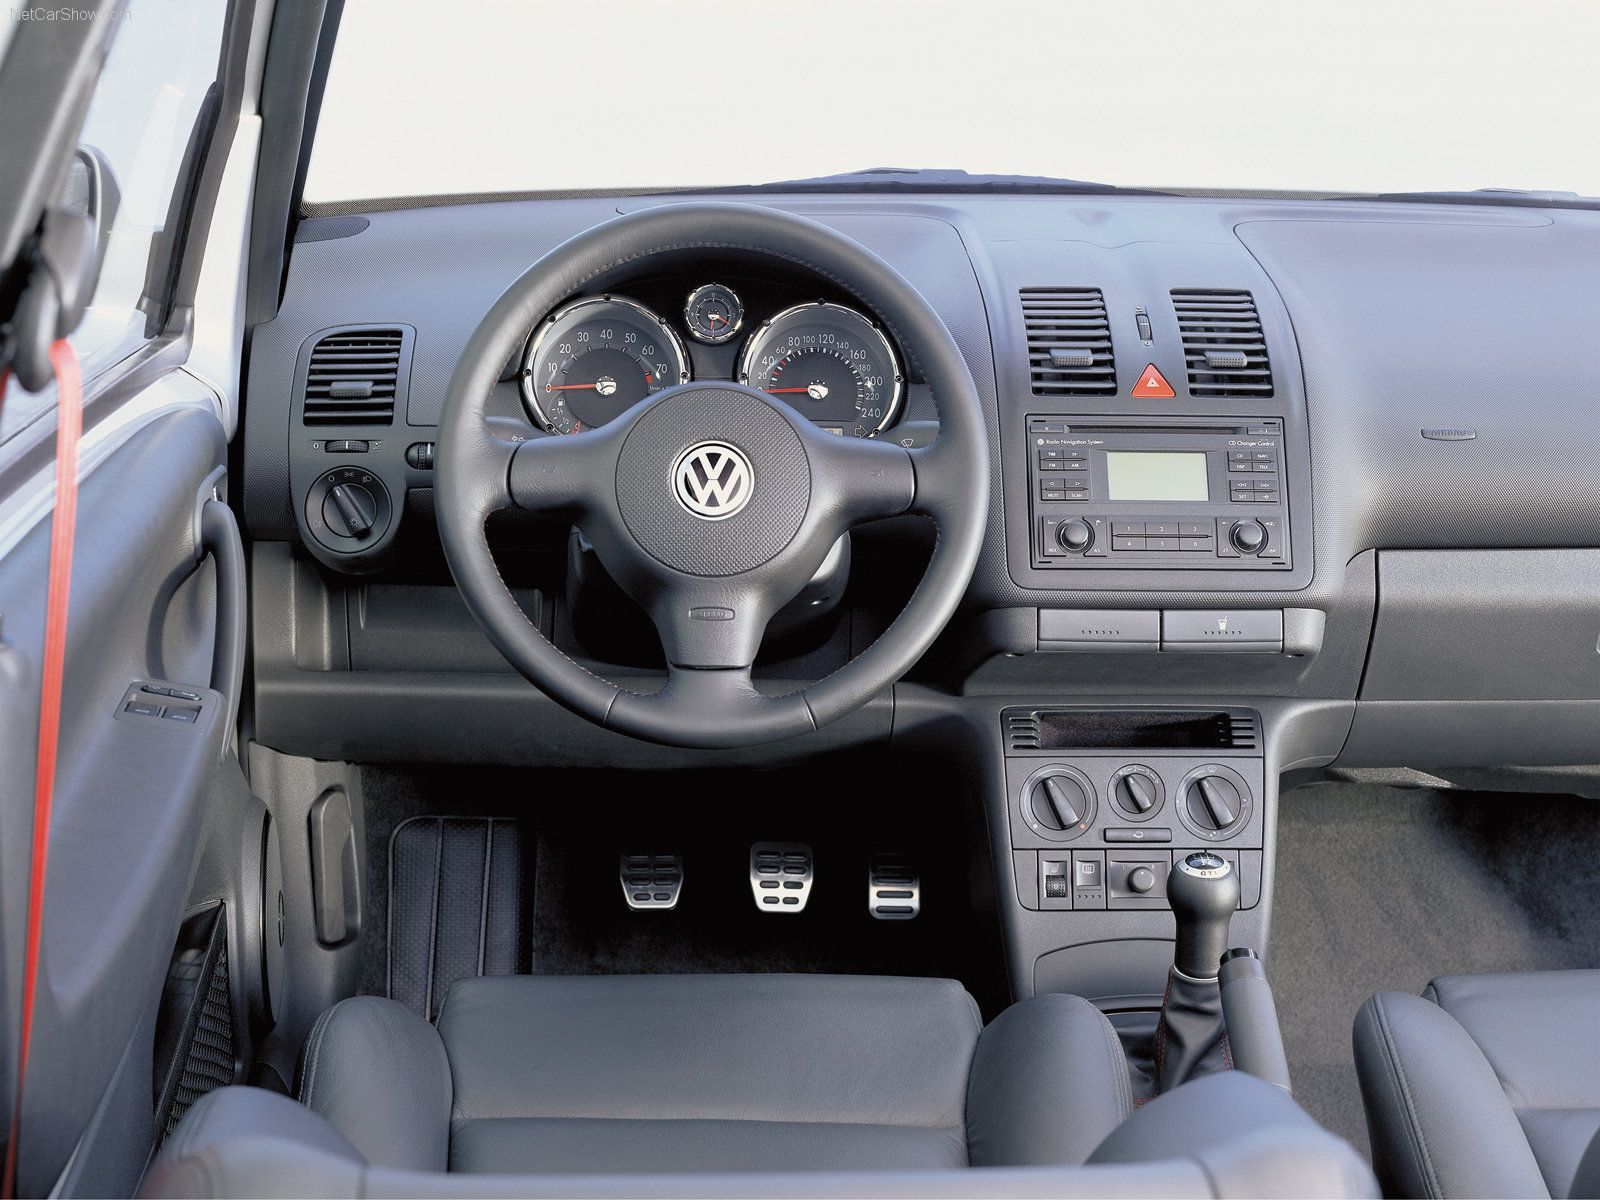 2000 Volkswagen Lupo GTI interior | Lupo, Up, Polo | Pinterest ...